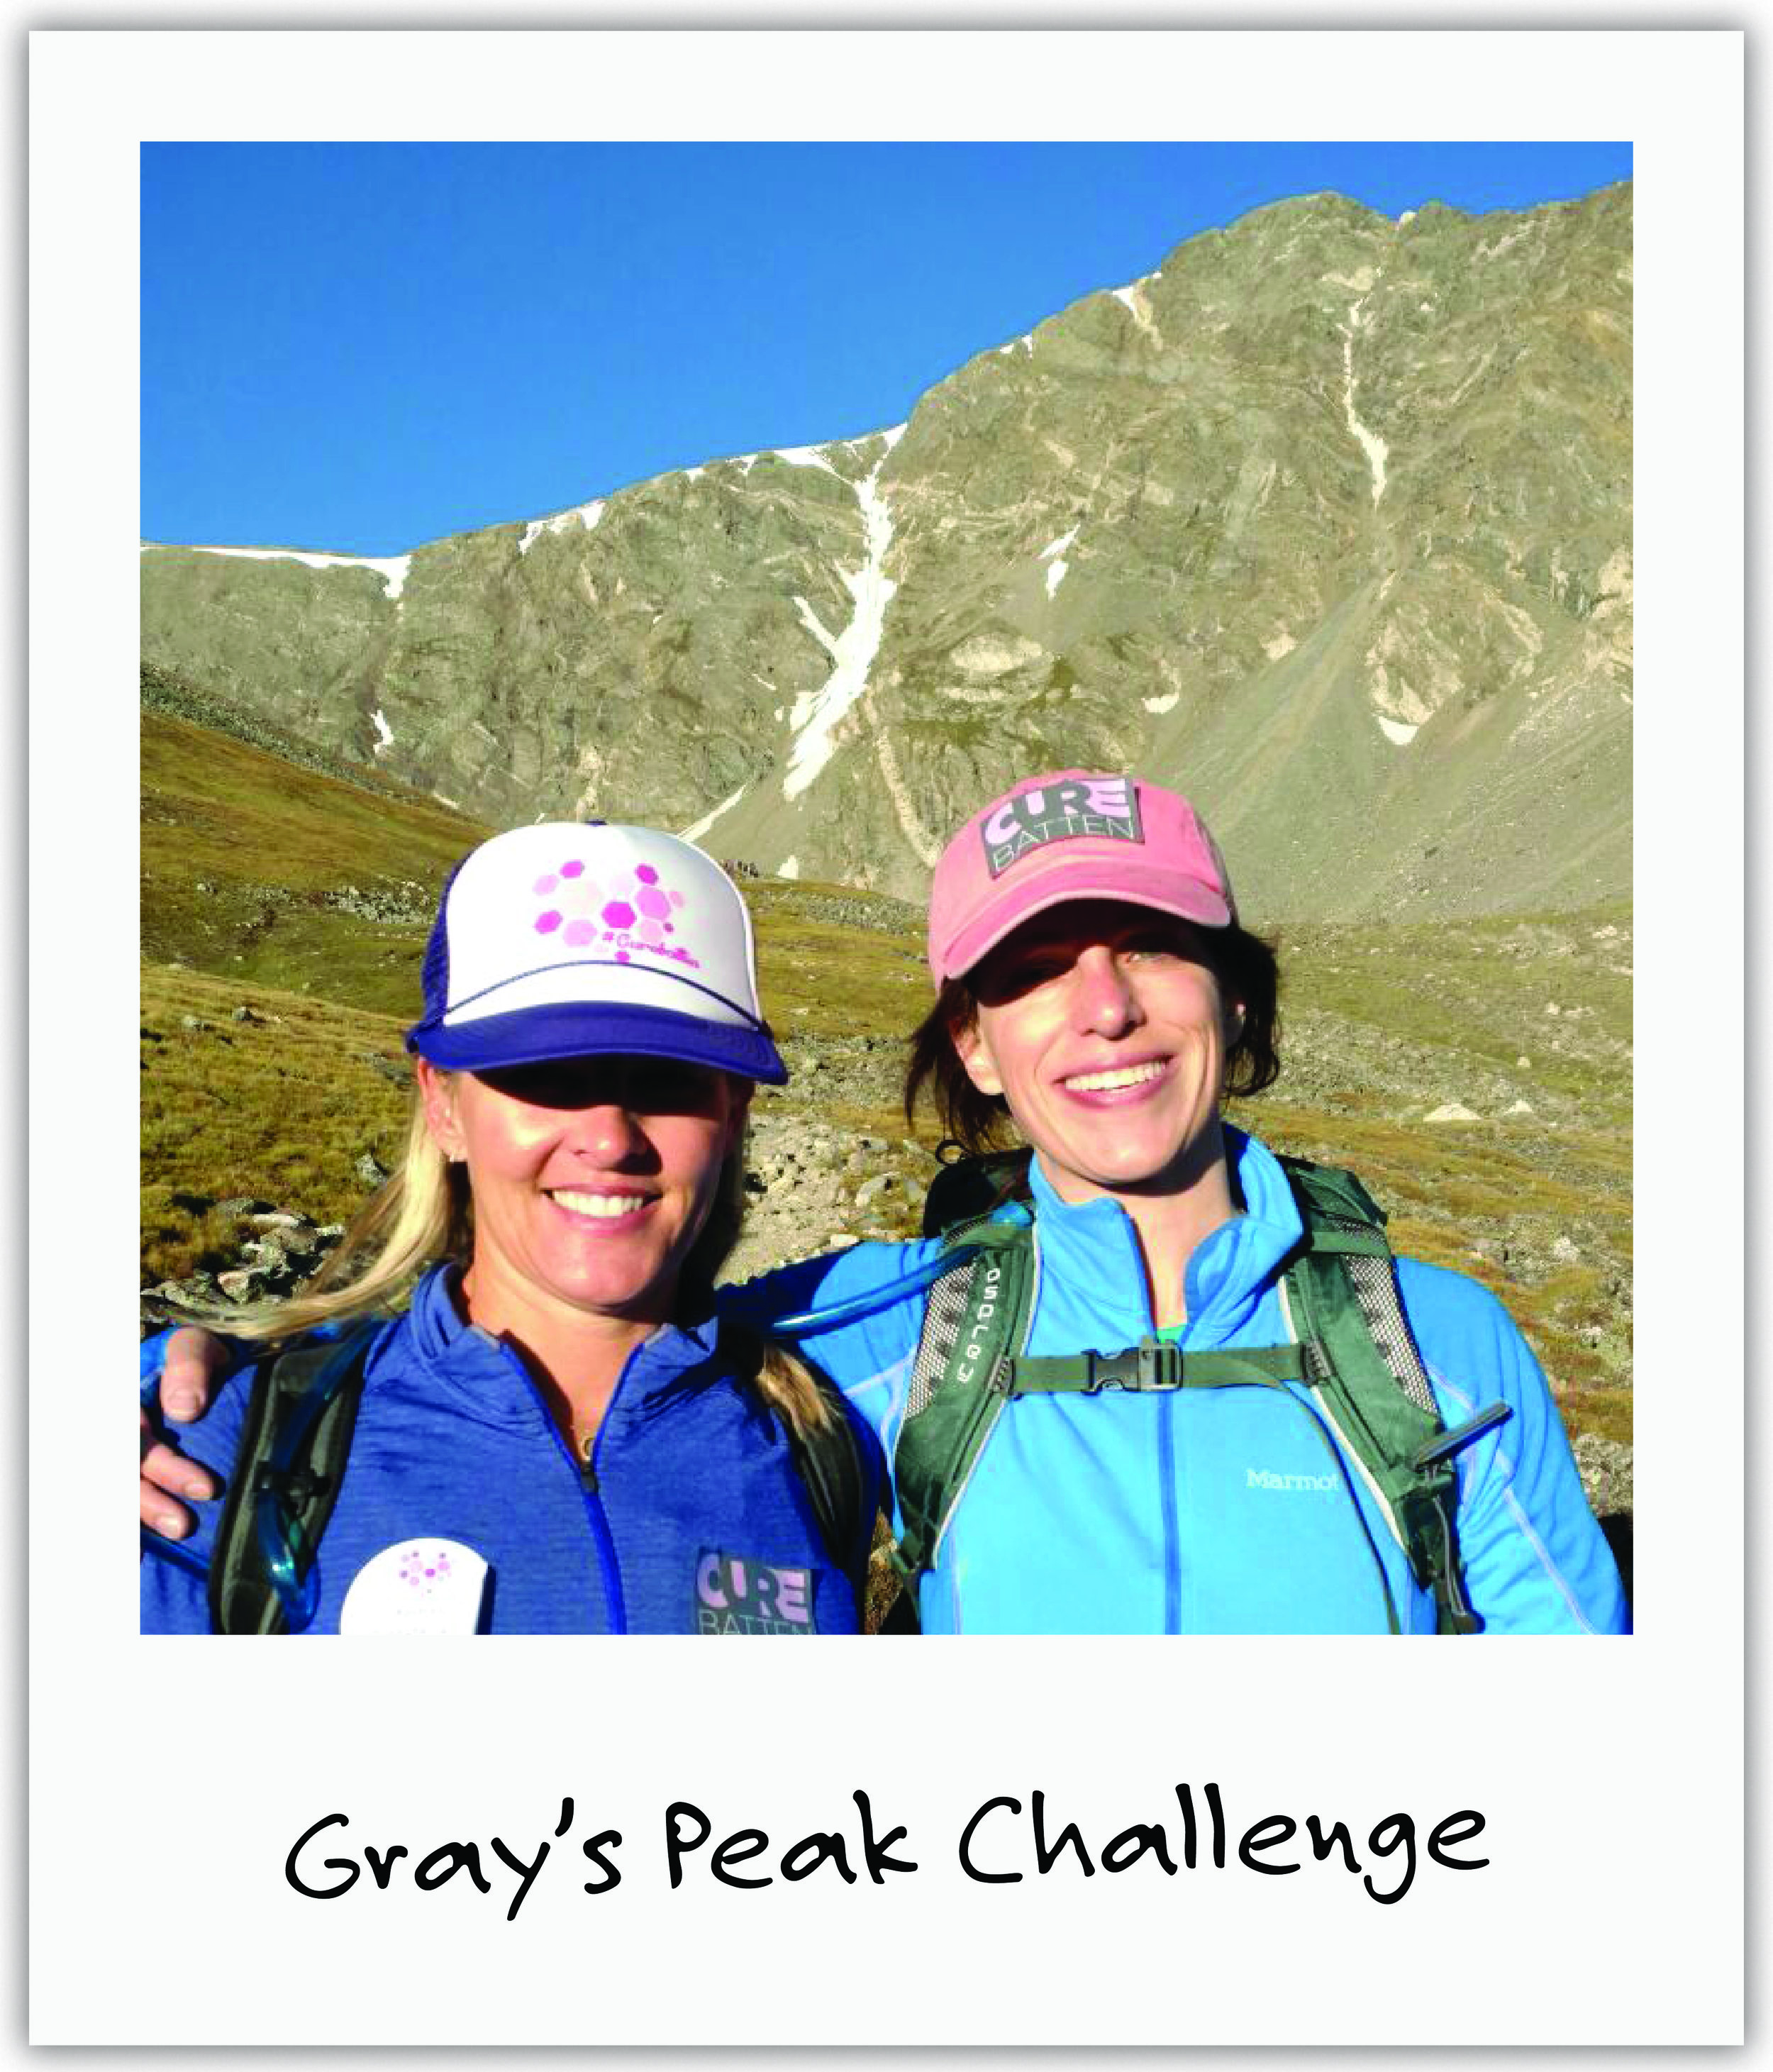 Mila's mom Julia hiked up Grays Peak to 14,278 ft together with other parents fighting for their kids with Batten Disease, including new friend and Batten pioneer Kristen.